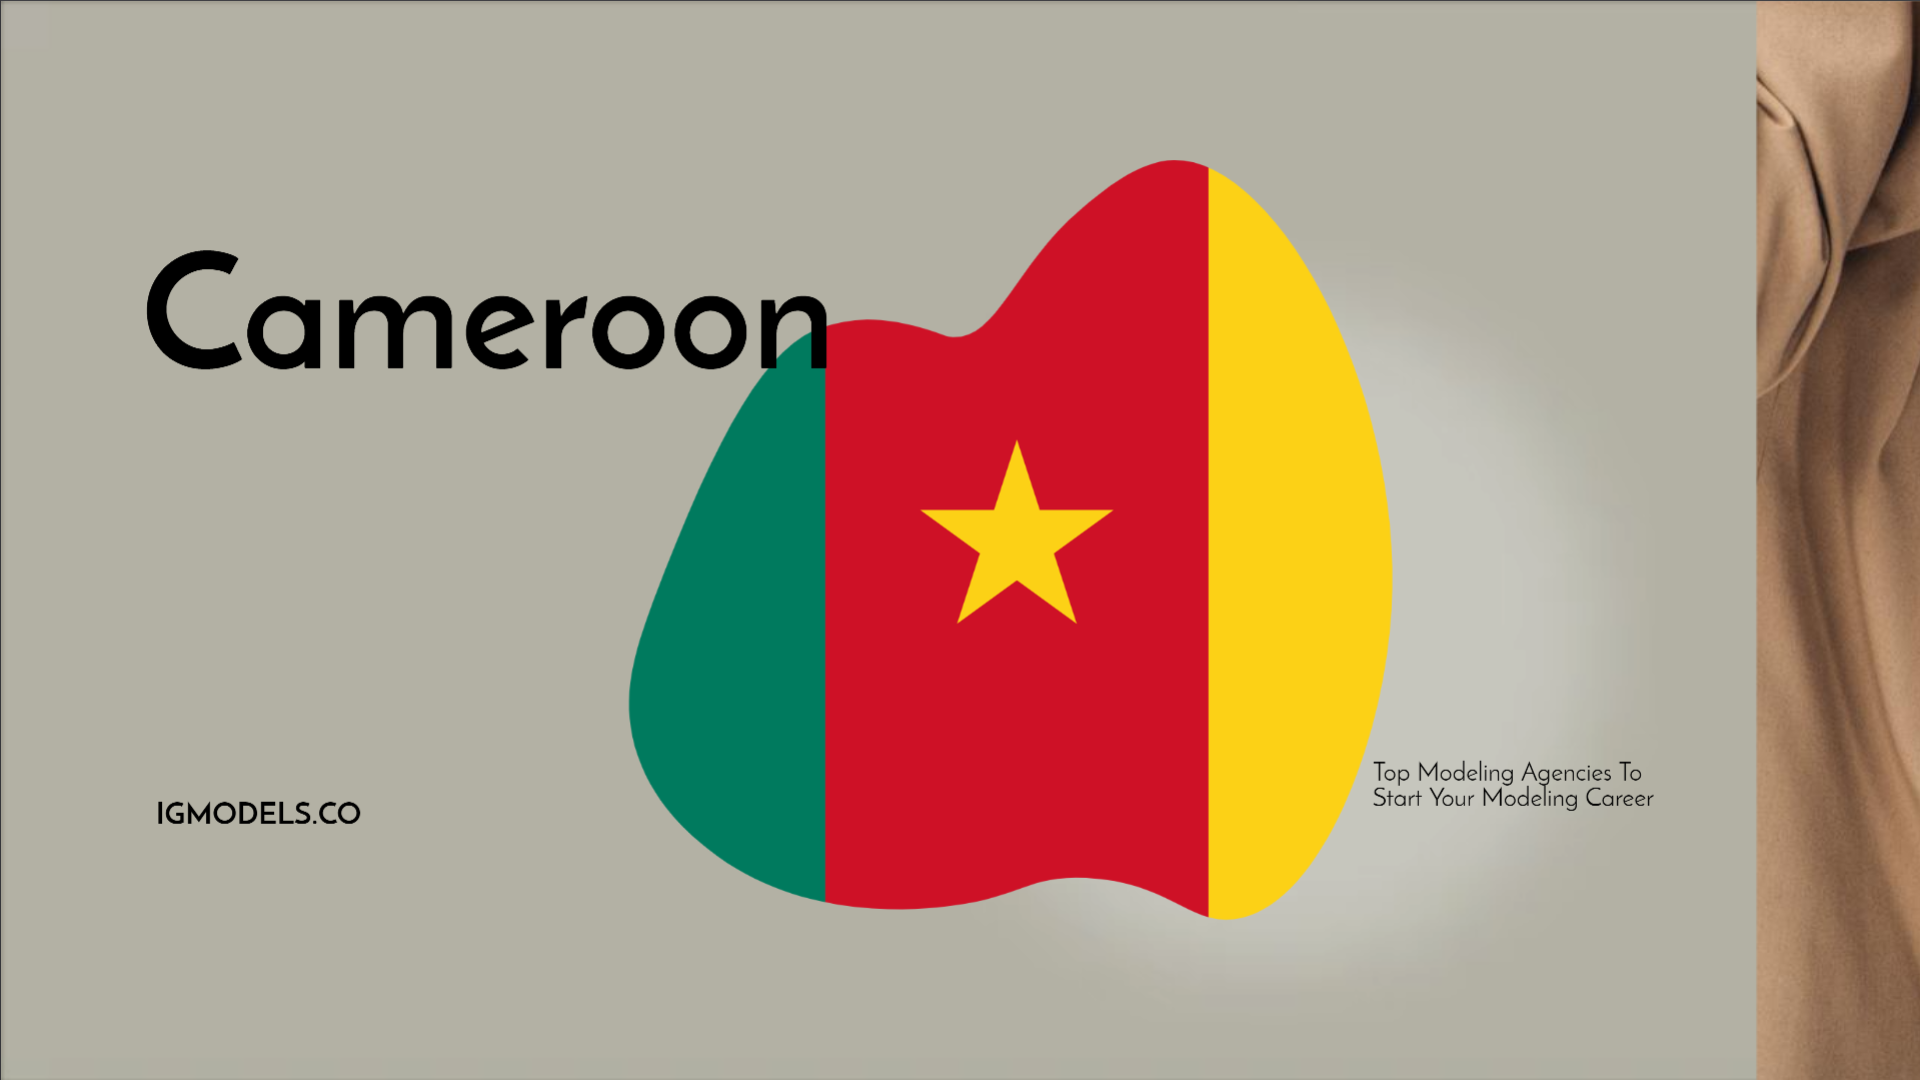 List : Top 35 Modeling Agencies In Cameroon To Start Your Modeling Career In 2021